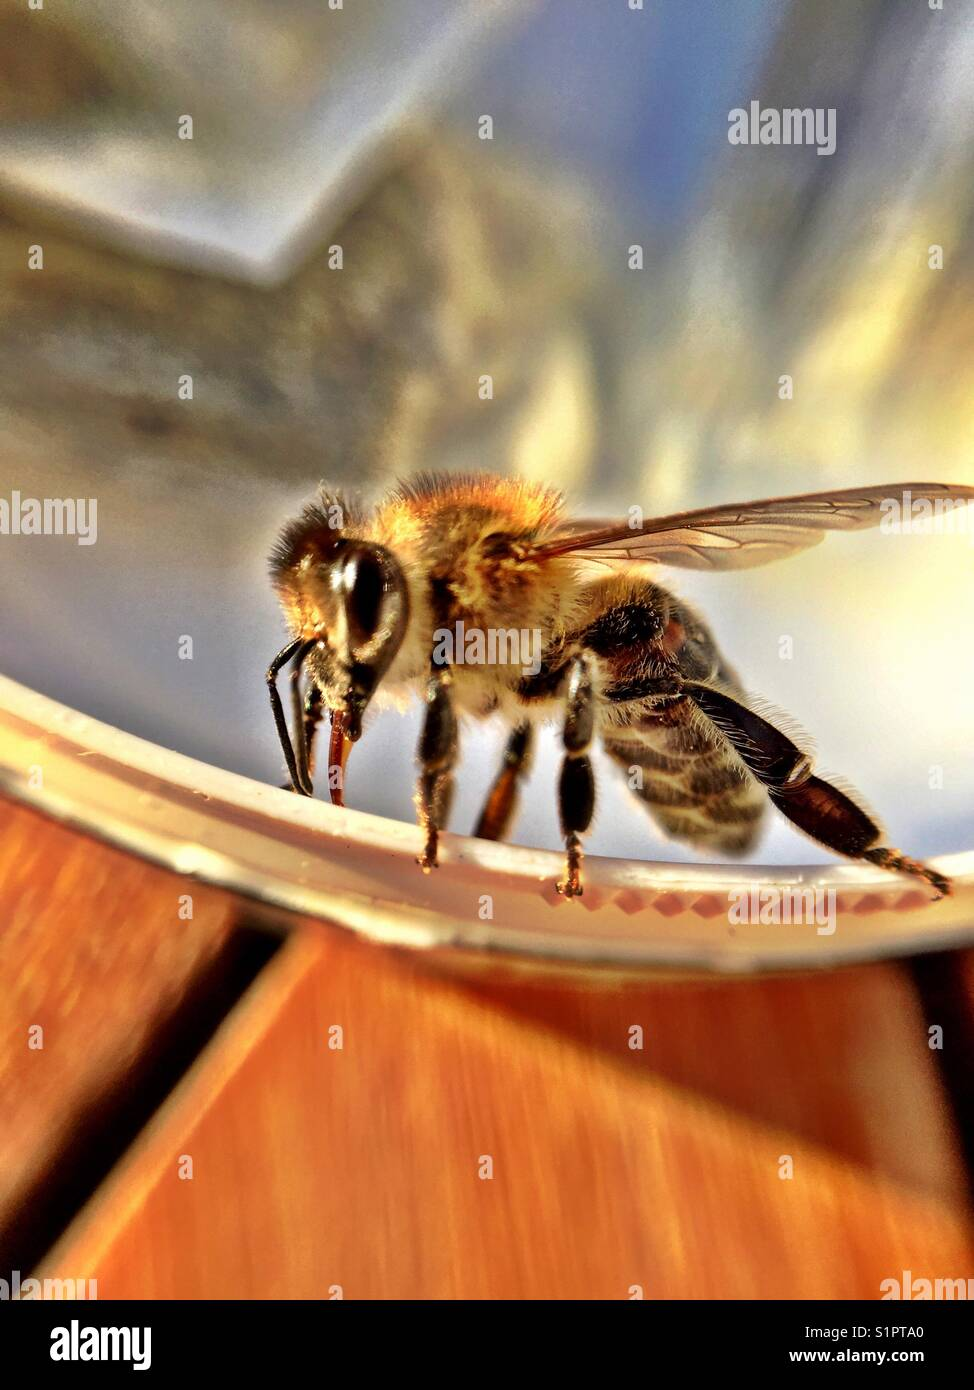 Busy bee on a wood table close up macro - Stock Image